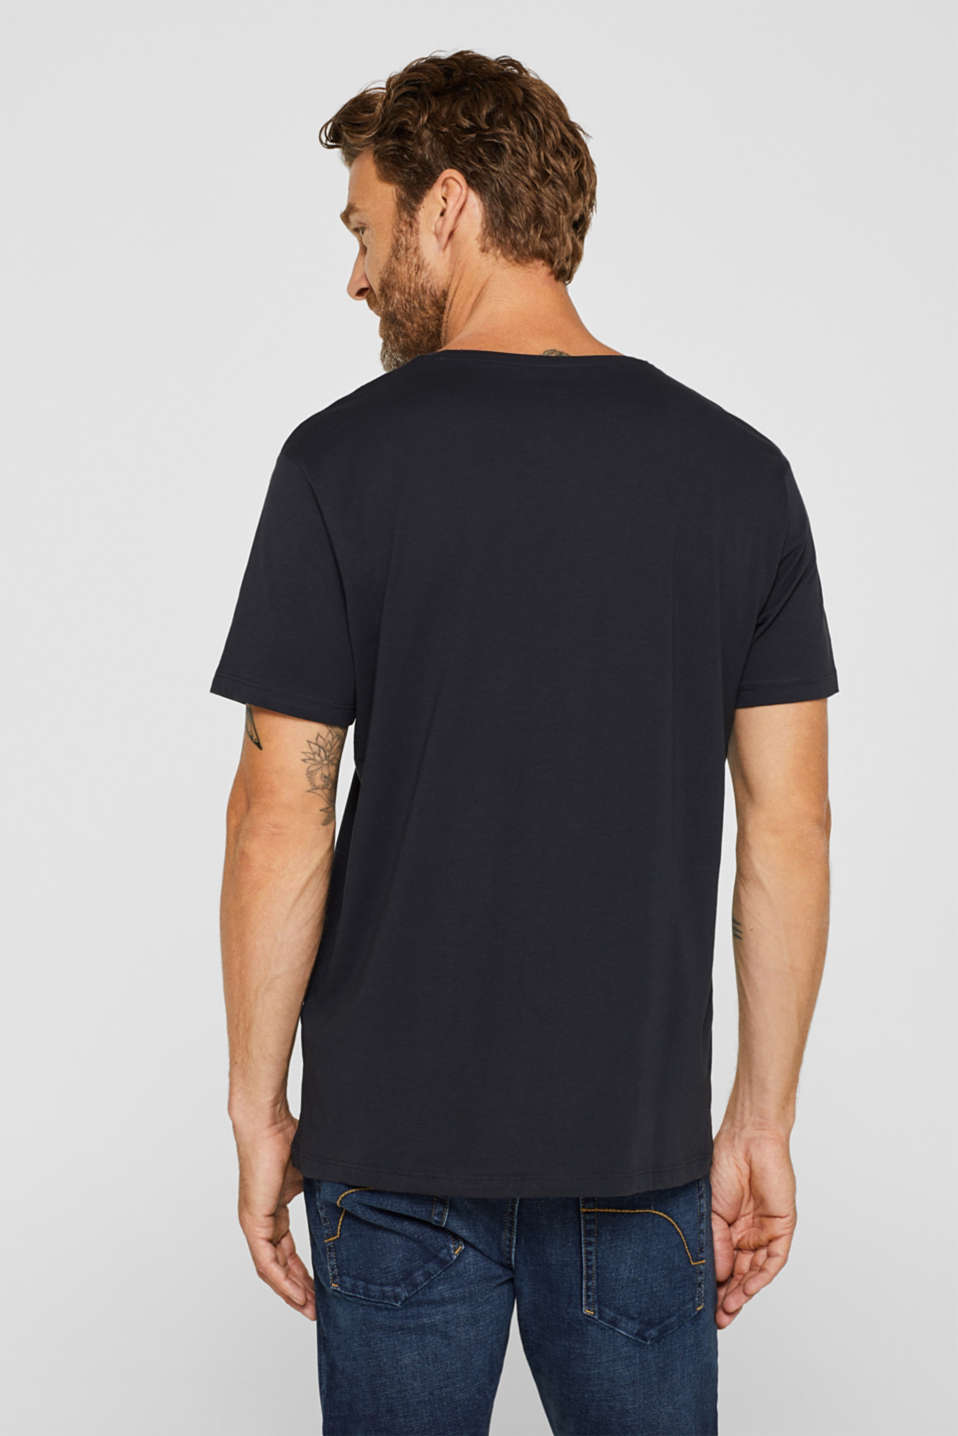 Jersey T-shirt with a print, 100% cotton, BLACK, detail image number 3